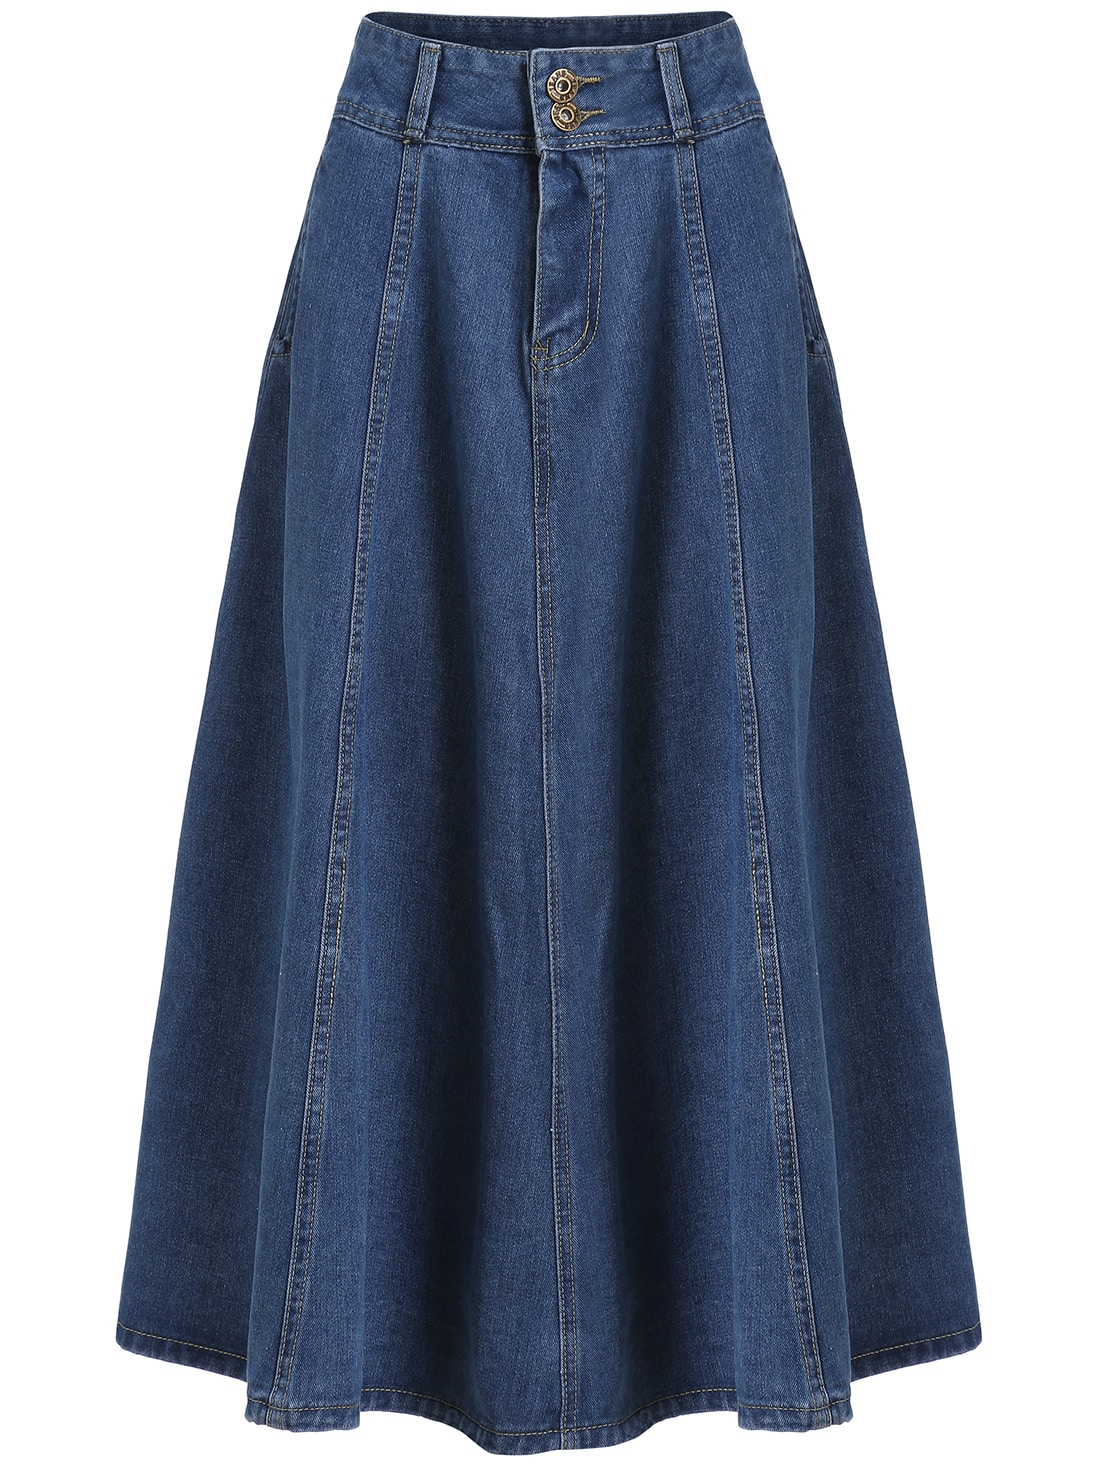 Find great deals on eBay for long skirt pockets. Shop with confidence. Skip to main content. eBay: JHCollectibles Womens Long Skirt Tan Linen Pockets Button Down Size 10 (29